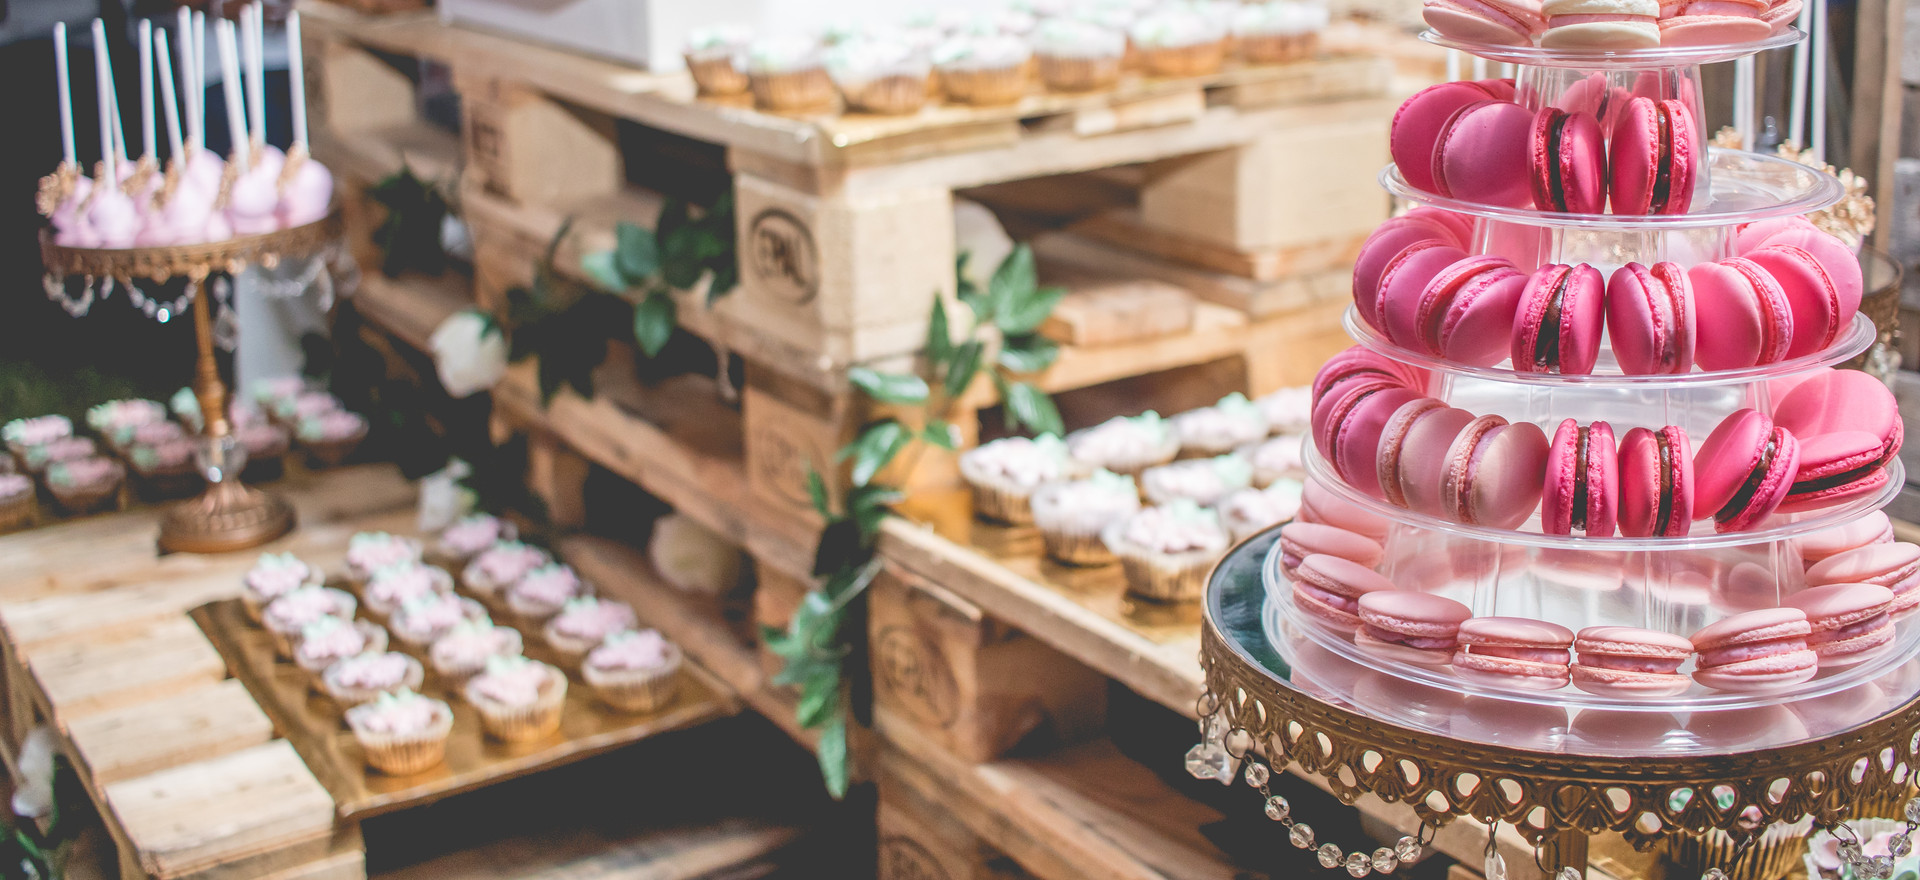 Wedding Bar featuring our gorgeous pink ombre macarons, cupcakes and cake pops